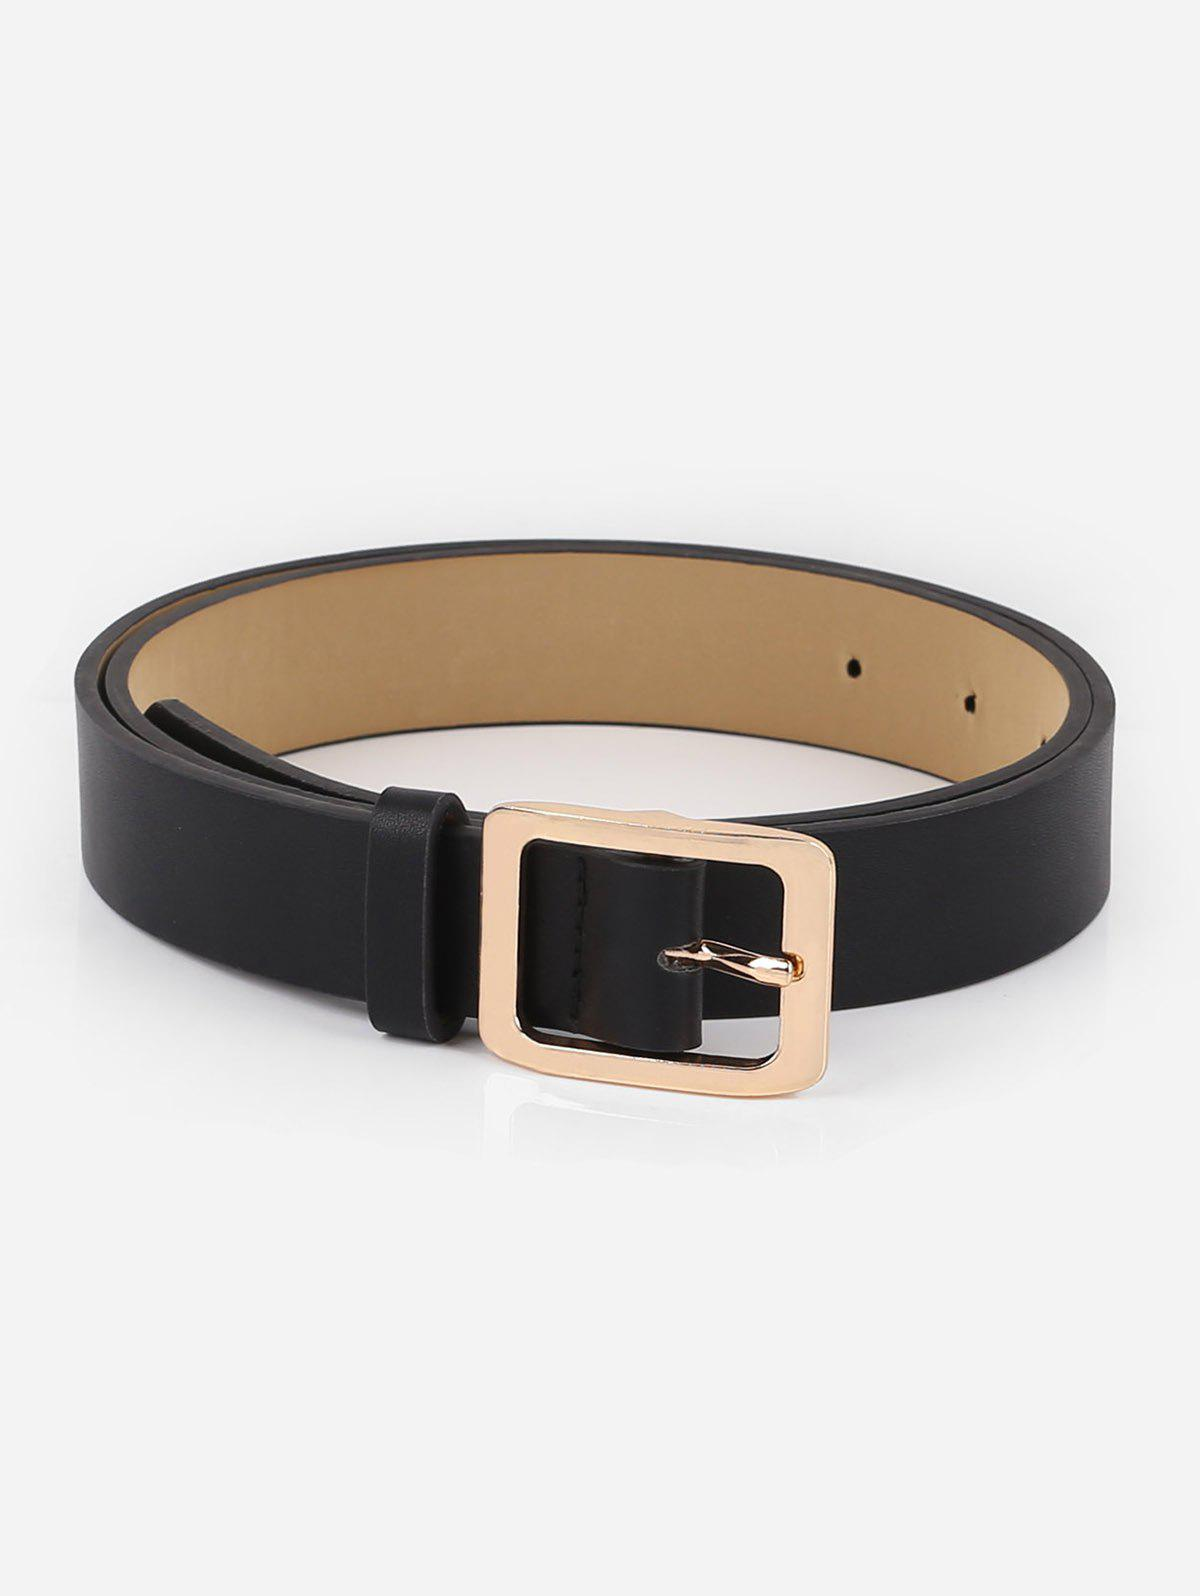 38f5f2be57c Alloy Square Buckle Faux Leather Belt